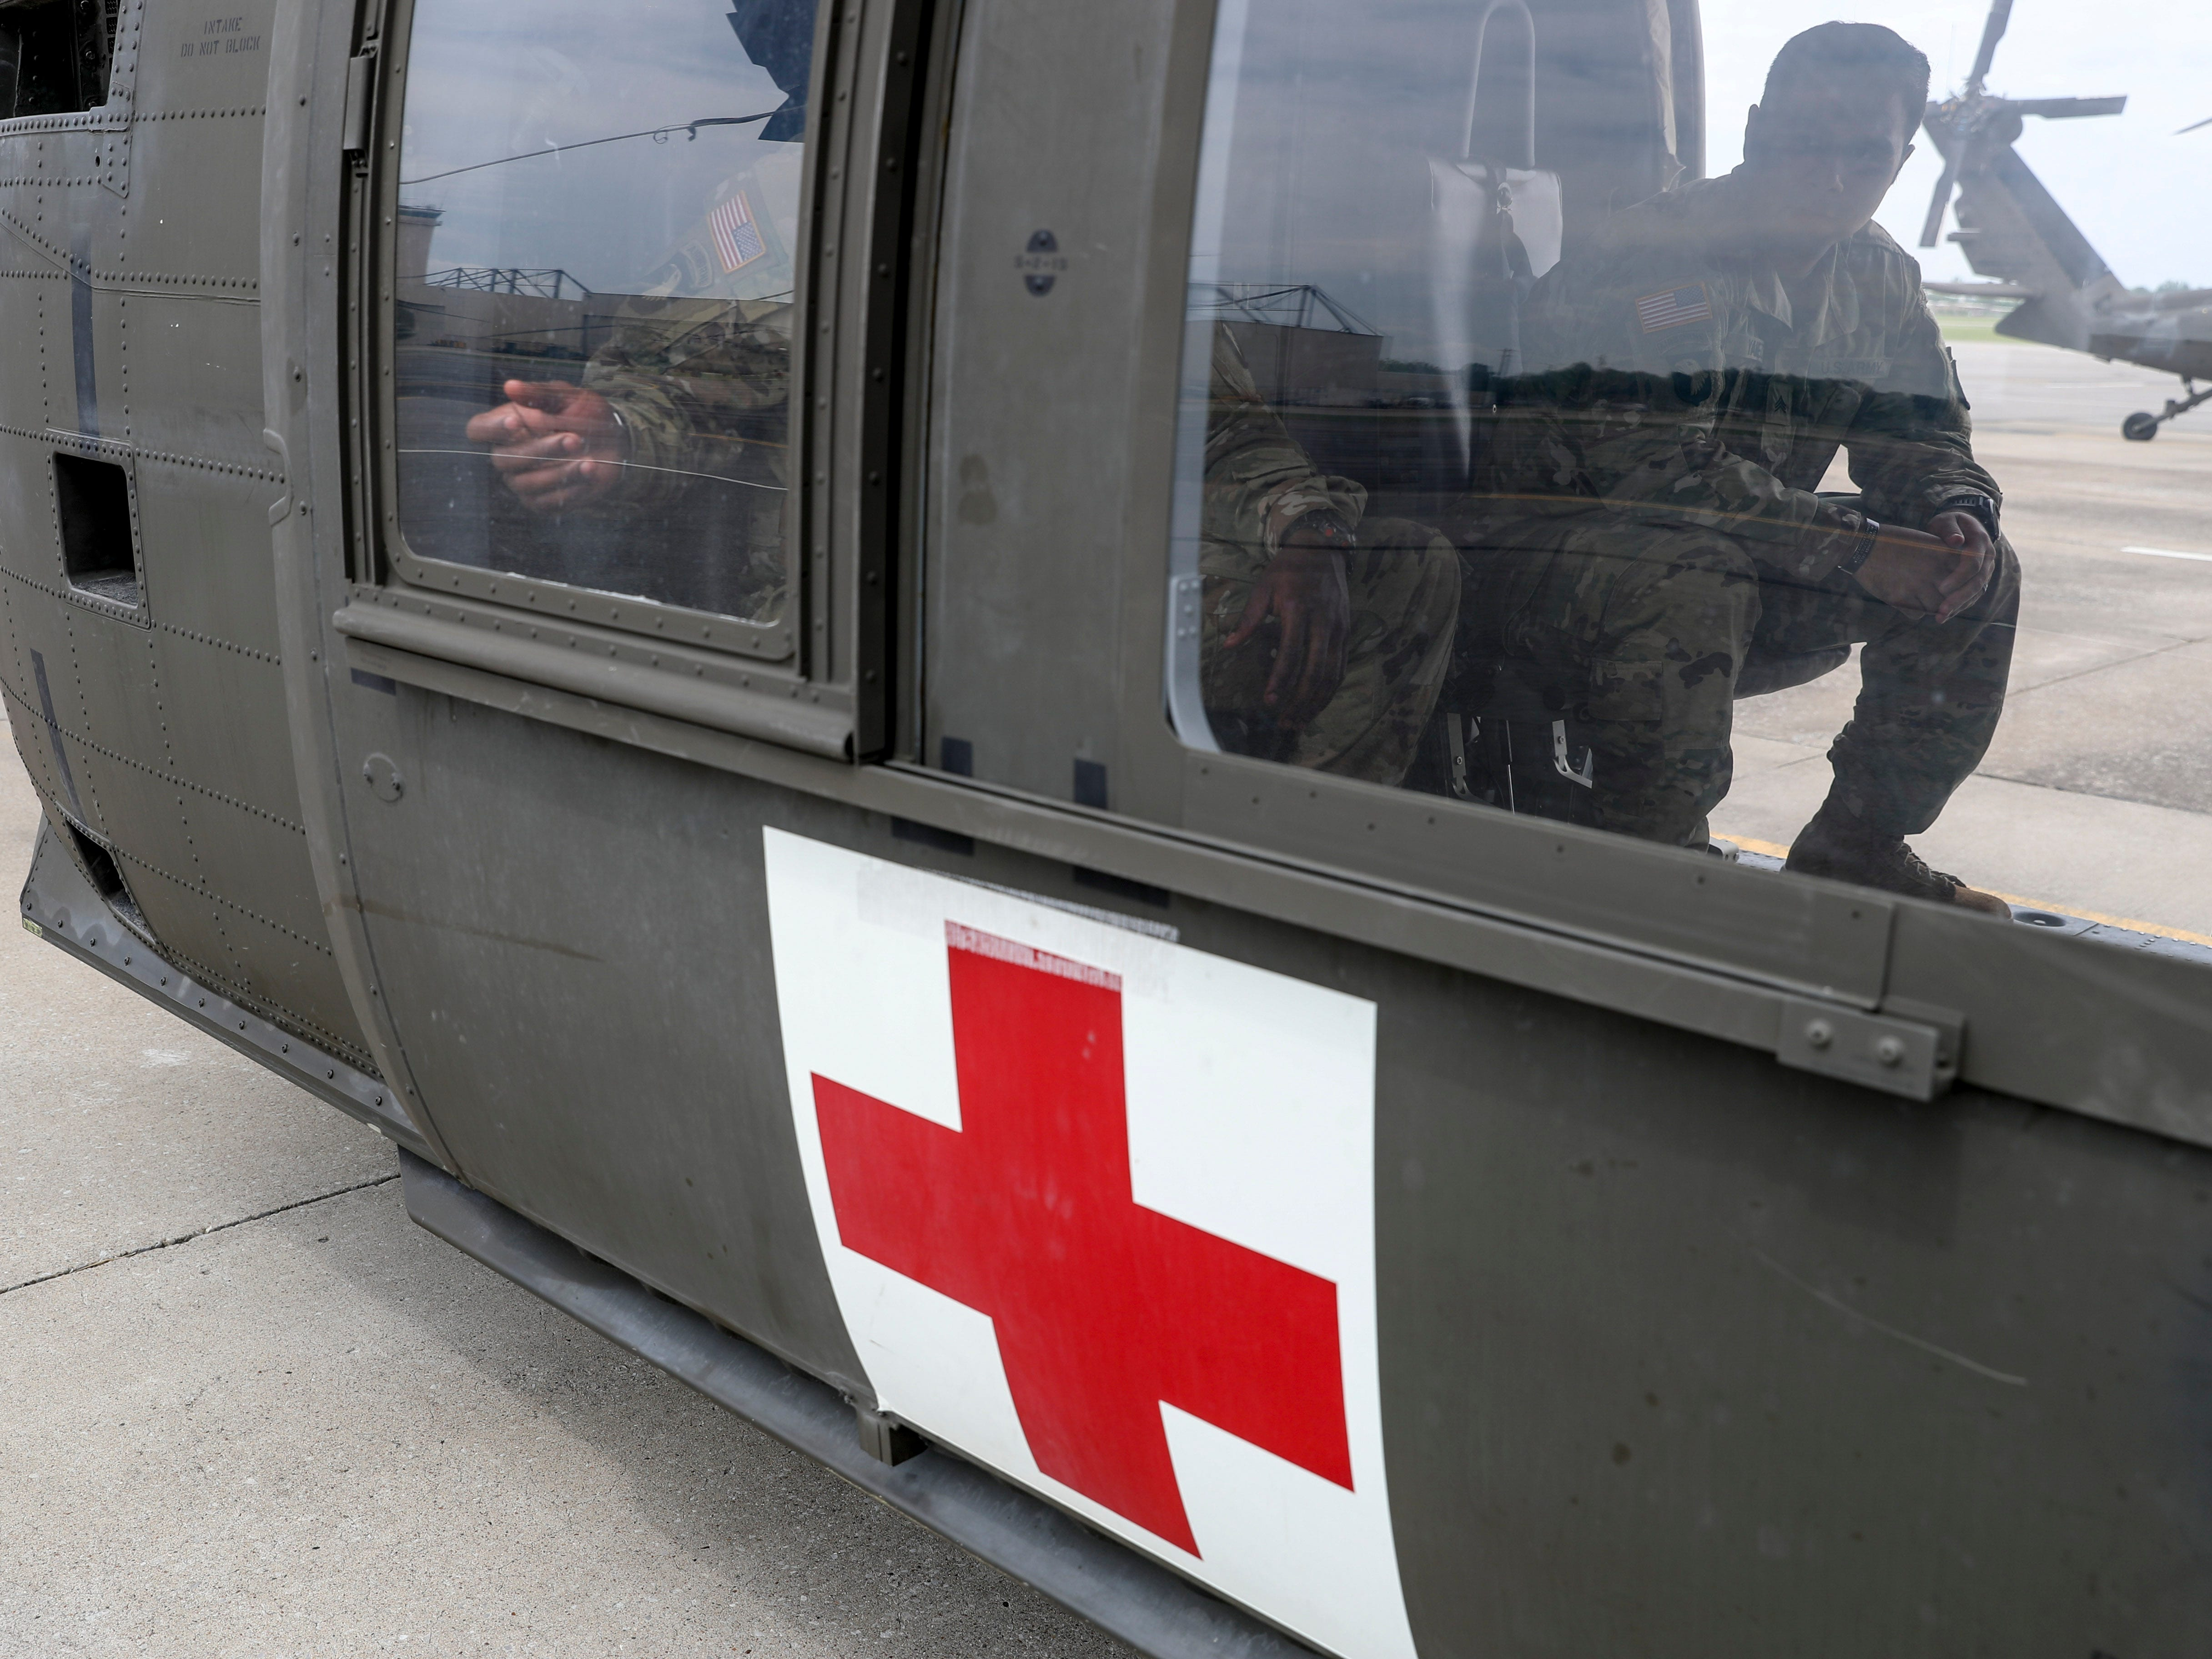 Sgt. Emmanuel Bynum taps on the window of a Black Hawk helicopter while sharing he and Sgt. Armando Yanez' story at Campbell Army Airfield in Fort Campbell, KY., on Wednesday, May 1, 2019.